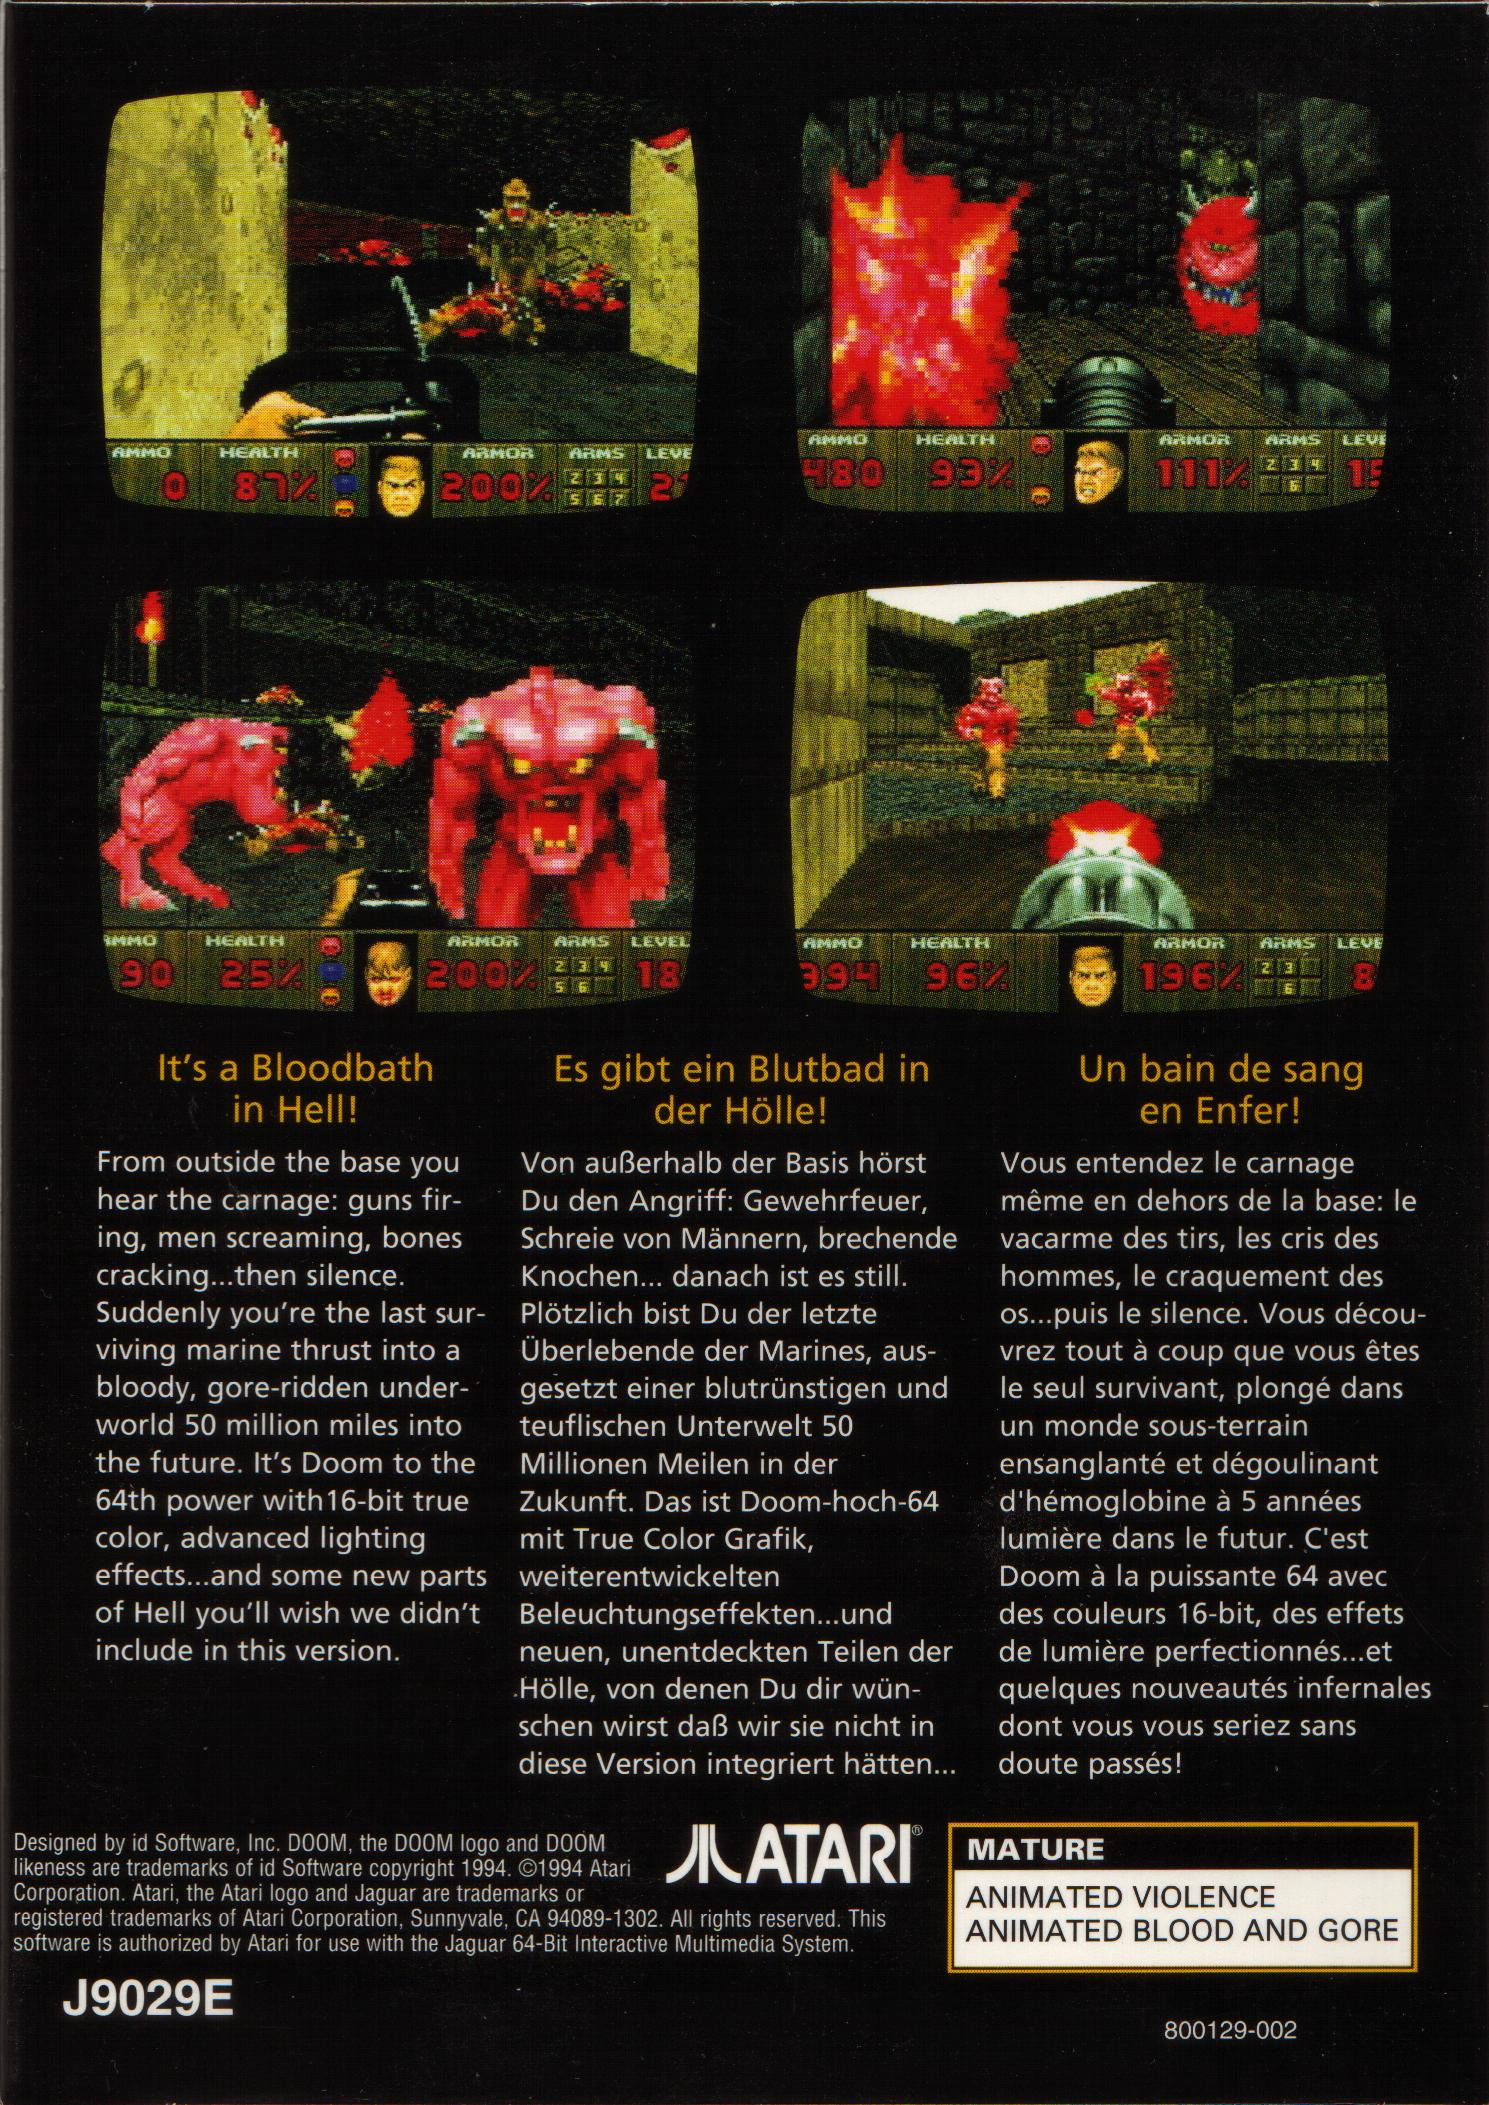 The Page of Doom: Doom Images